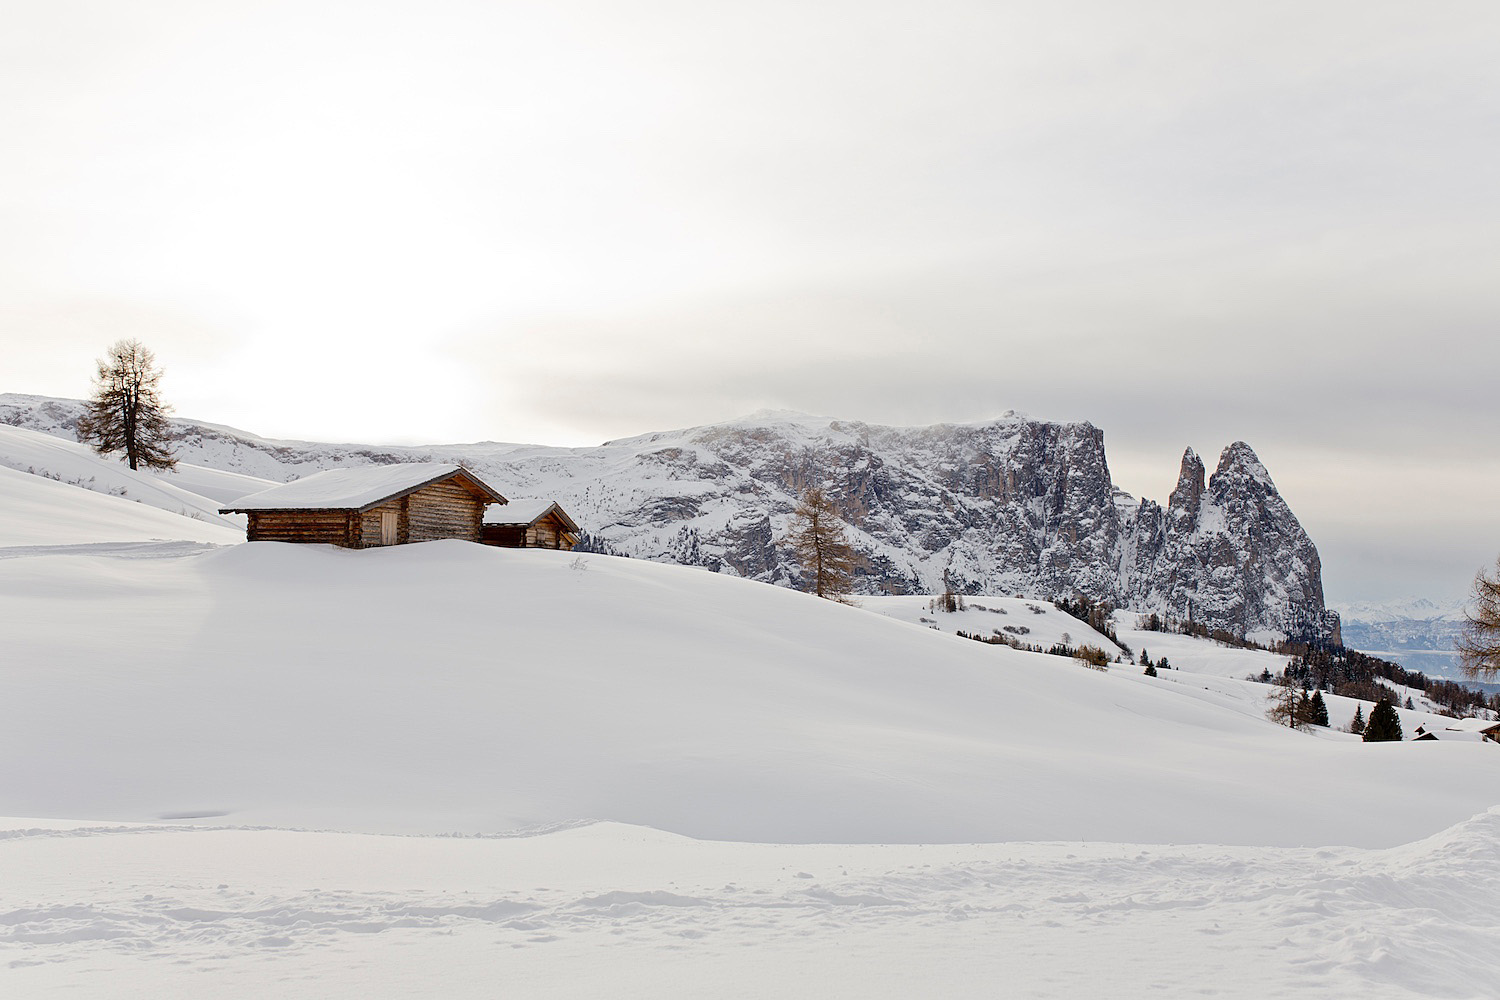 <em>Winter holidays in South Tyrol </em><br>Culinary hike on Alpe di Siusi to Malga Schwaiger